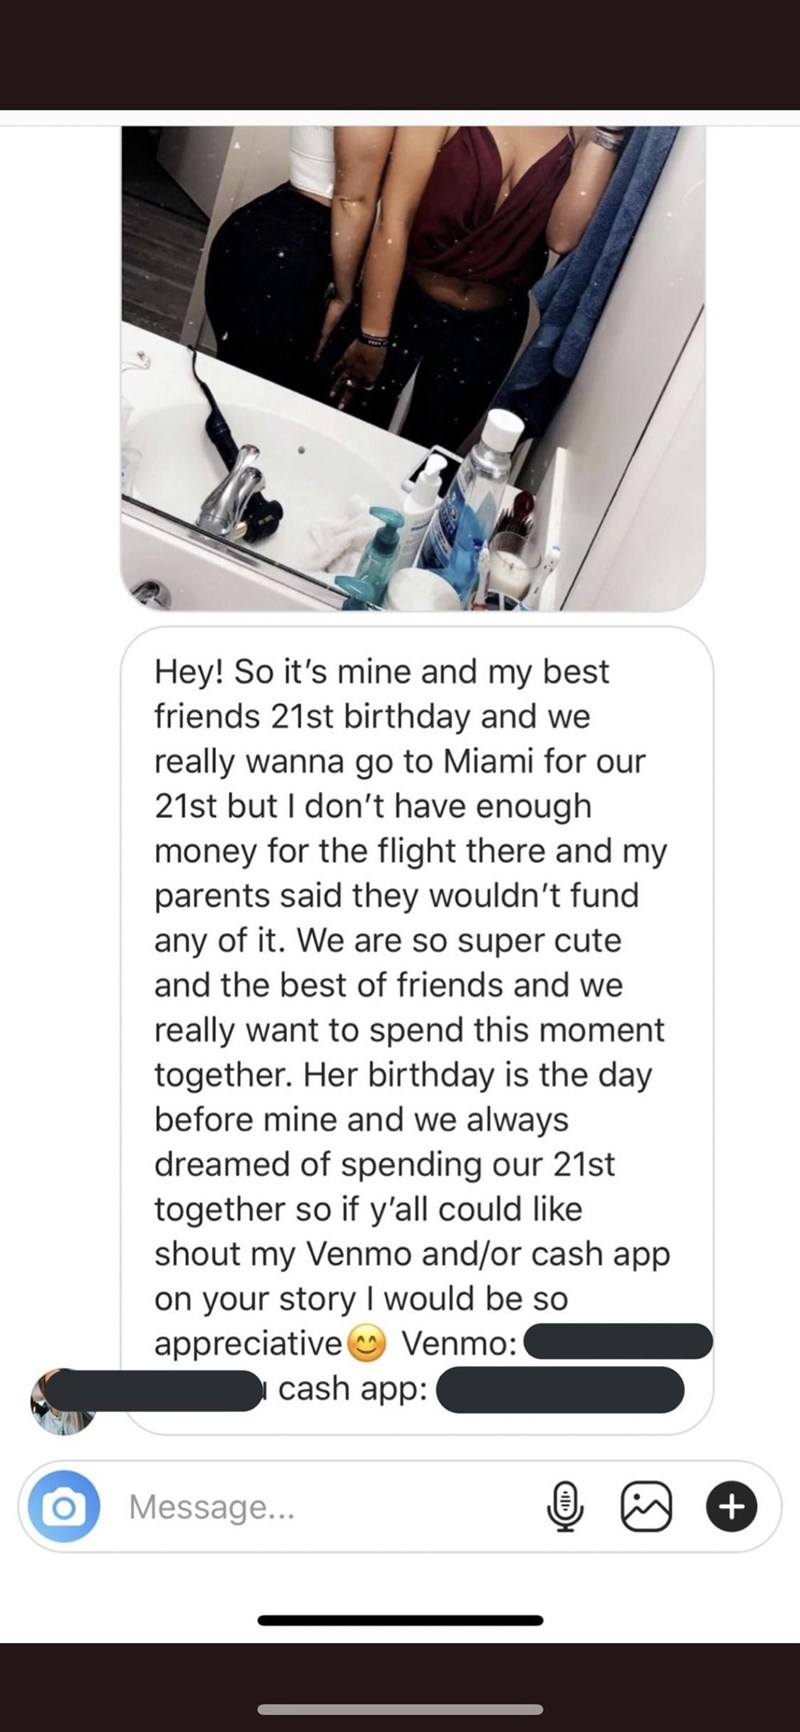 Text - Hey! So it's mine and my best friends 21st birthday and we really wanna go to Miami for our 21st but I don't have enough money for the flight there and my parents said they wouldn't fund any of it. We are so super cute and the best of friends and we really want to spend this moment together. Her birthday is the day before mine and we always dreamed of spending our 21st together so if y'all could like shout my Venmo and/or cash app on your story I would be so appreciative Venmo: cash app: